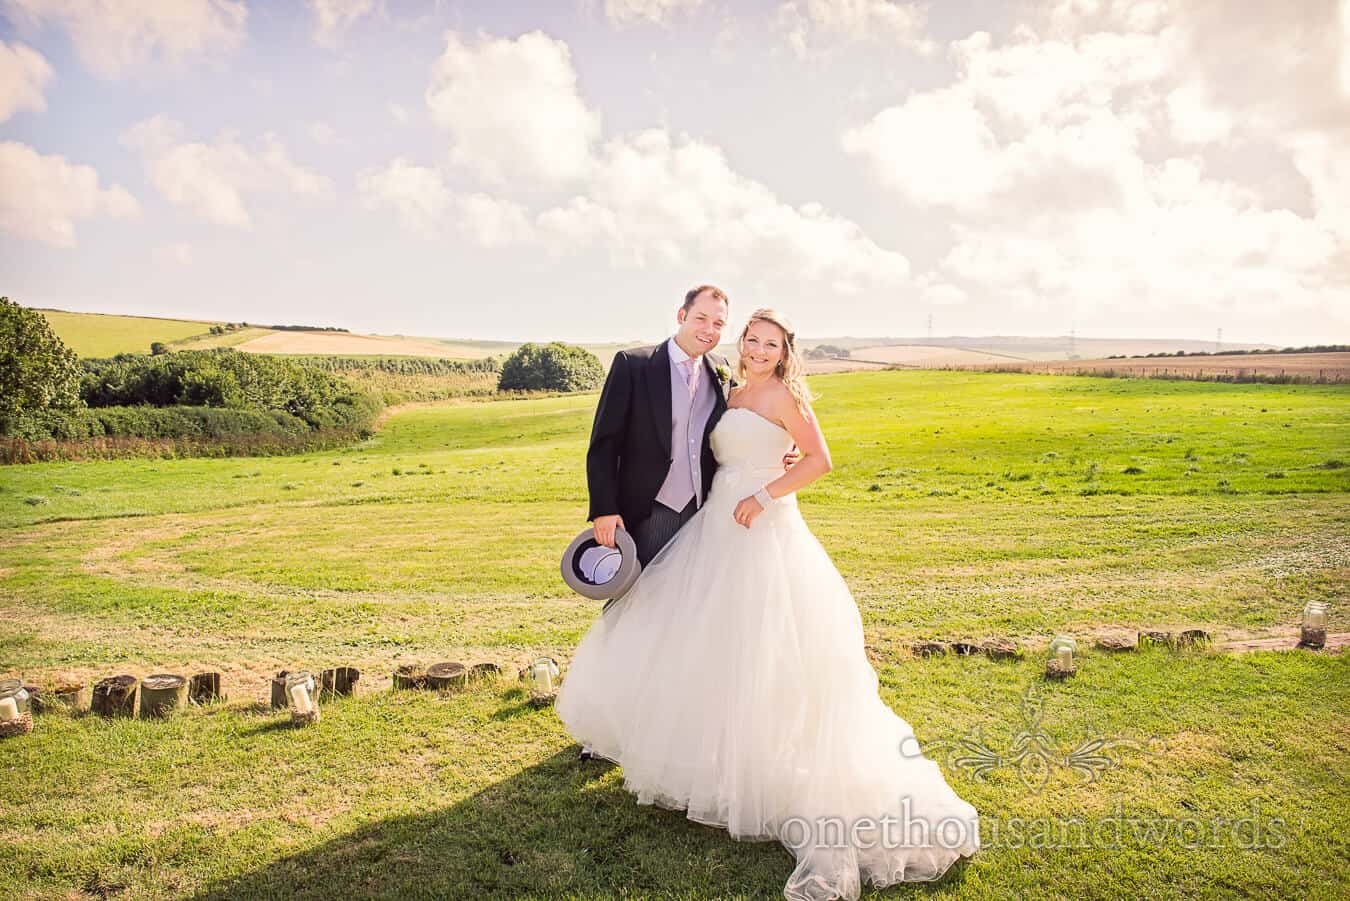 Bride and groom in countryside at Dorset Home Wedding